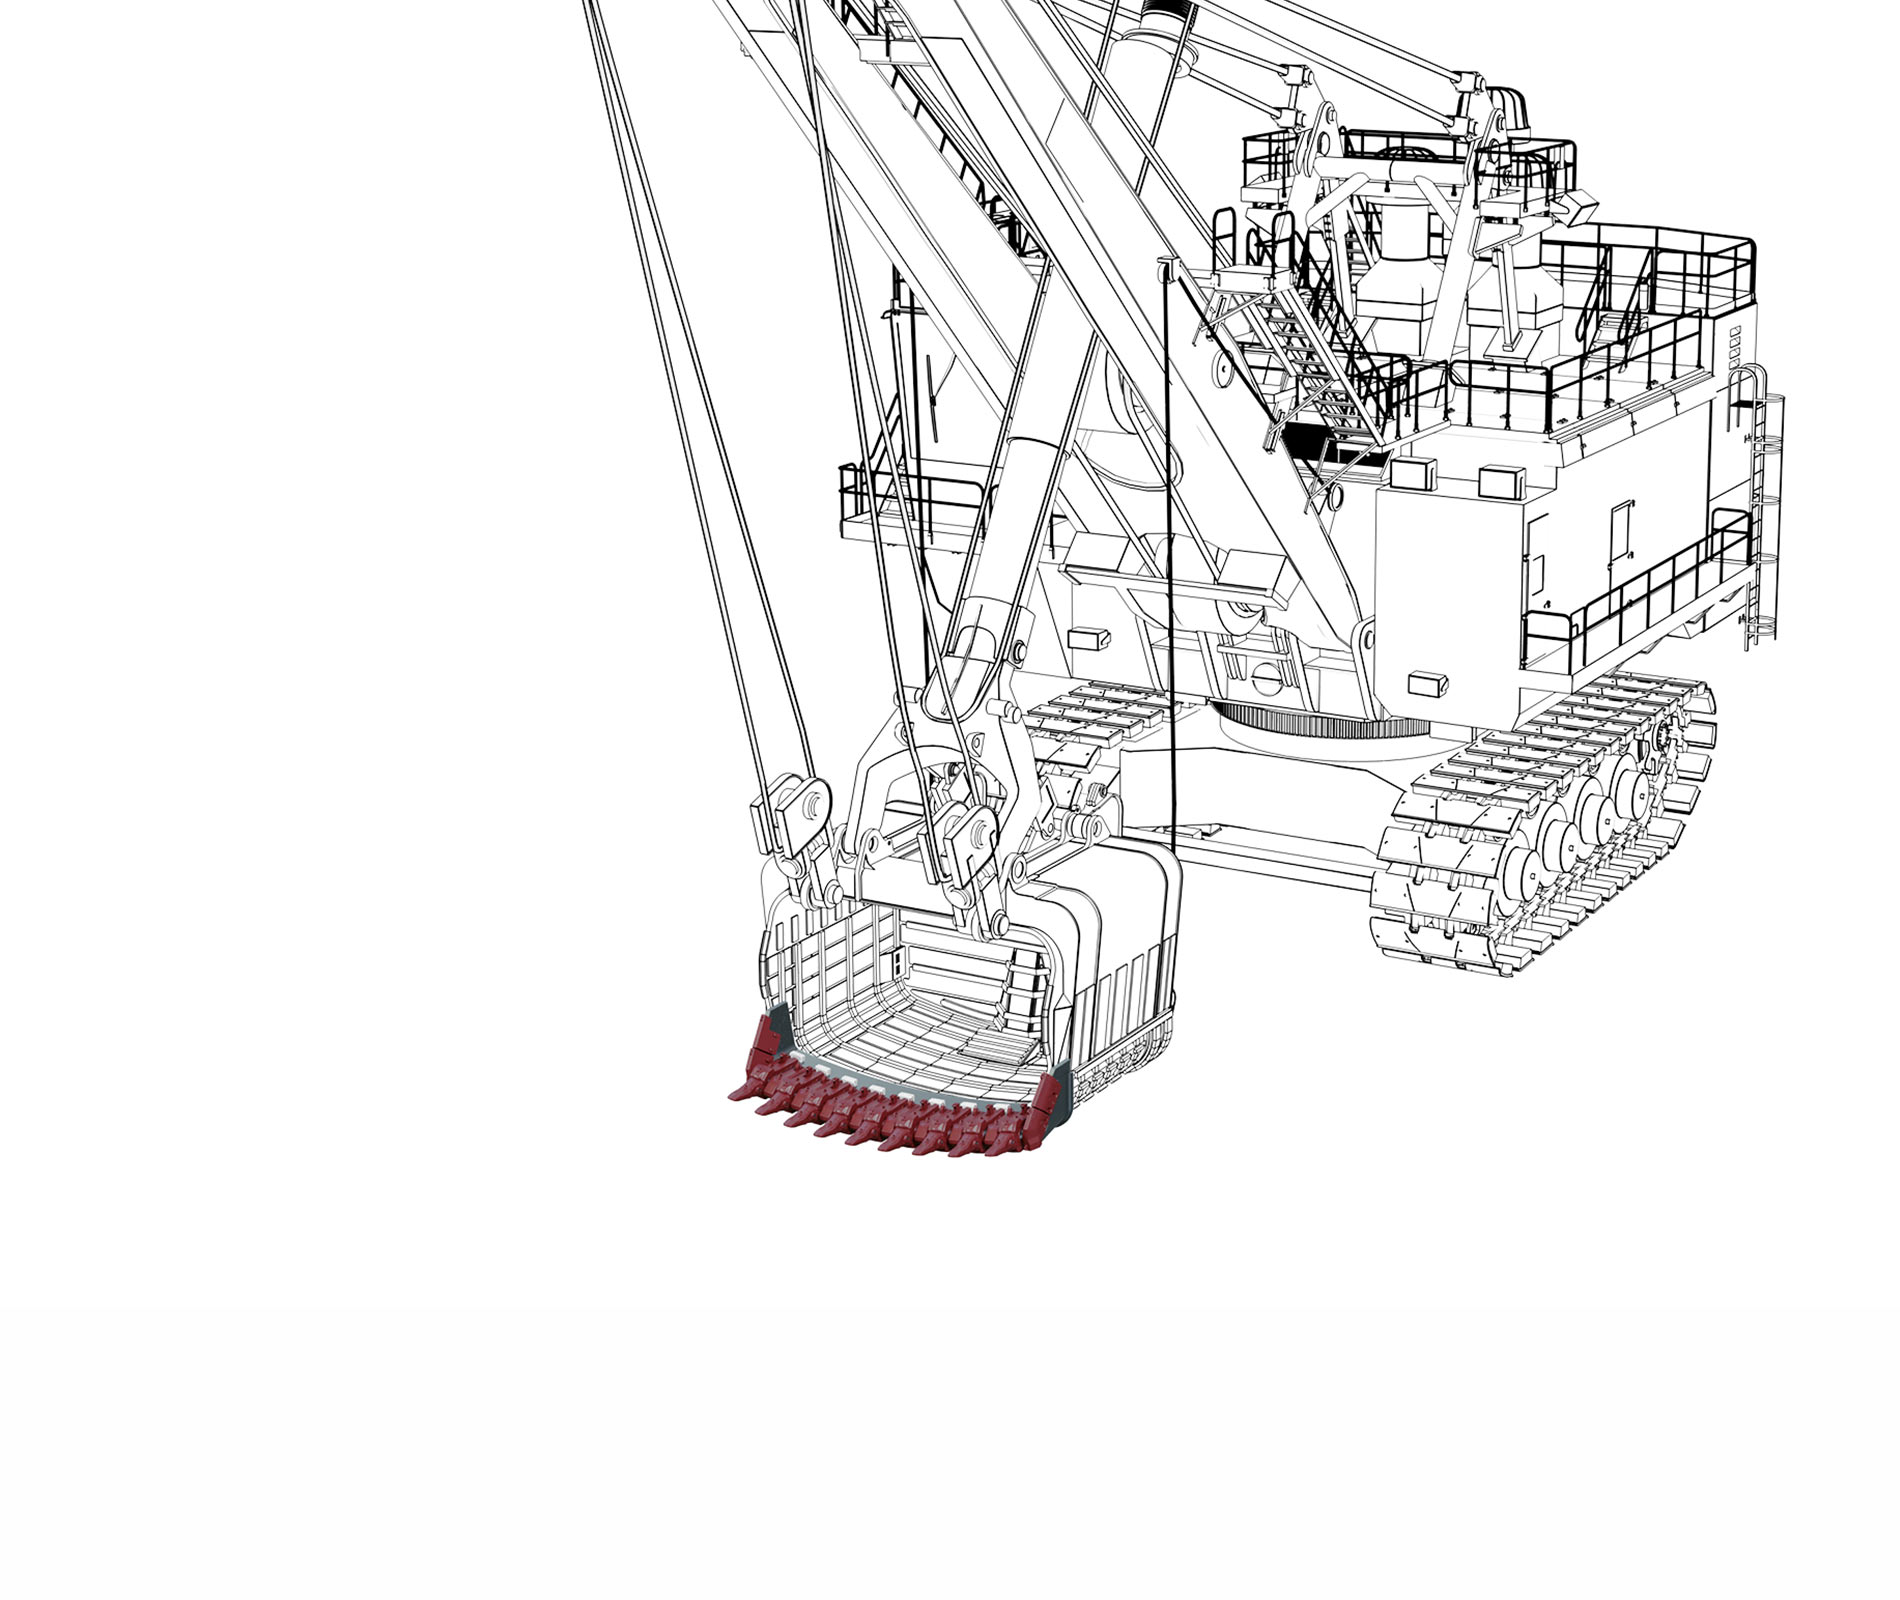 Machine_RopeShovel_Mining_CAT7495(HR)_t